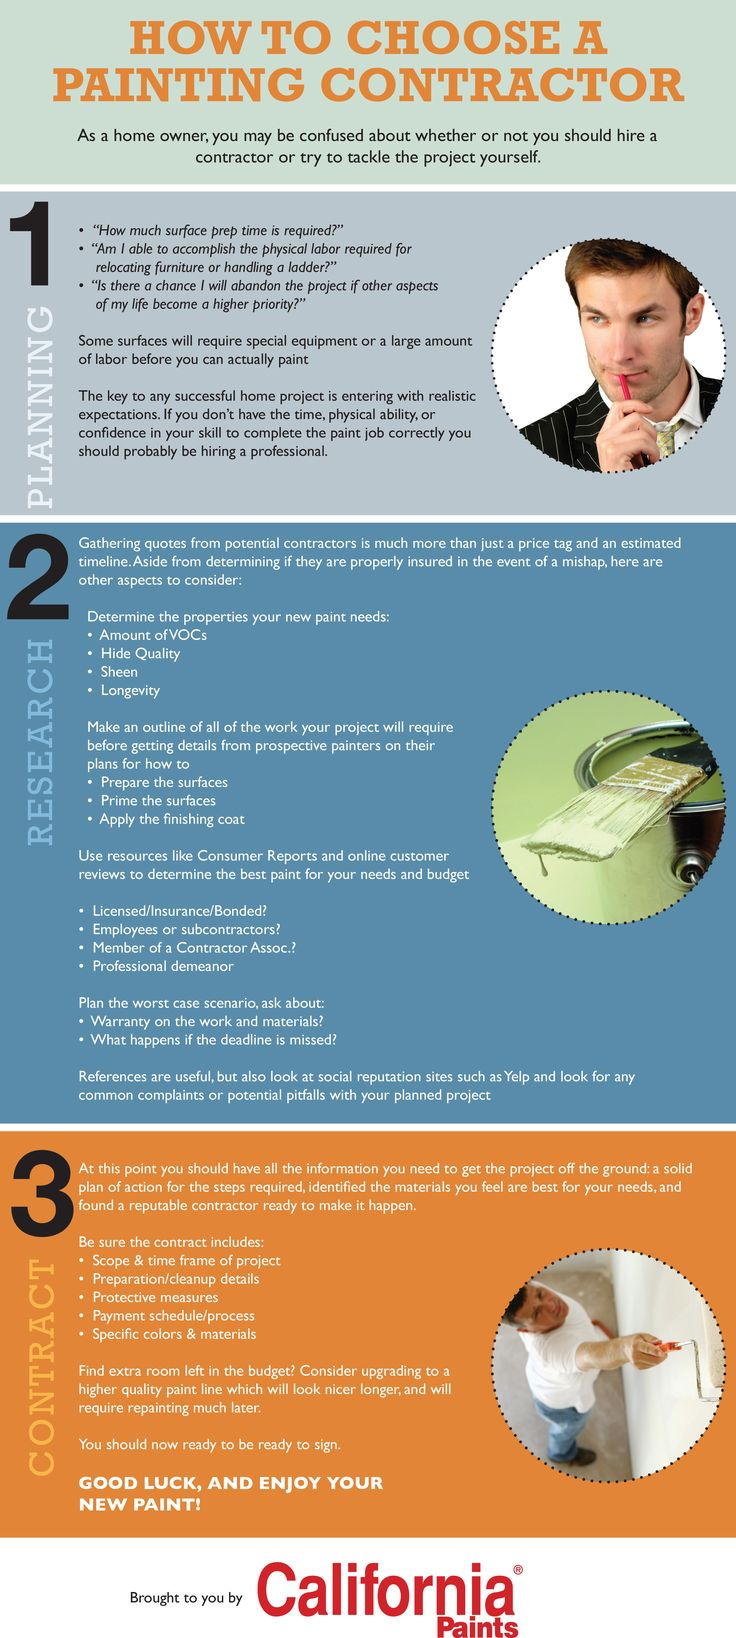 We Crafted An Infographic To Help Guide You Through How To Hire A Painting  Contractor